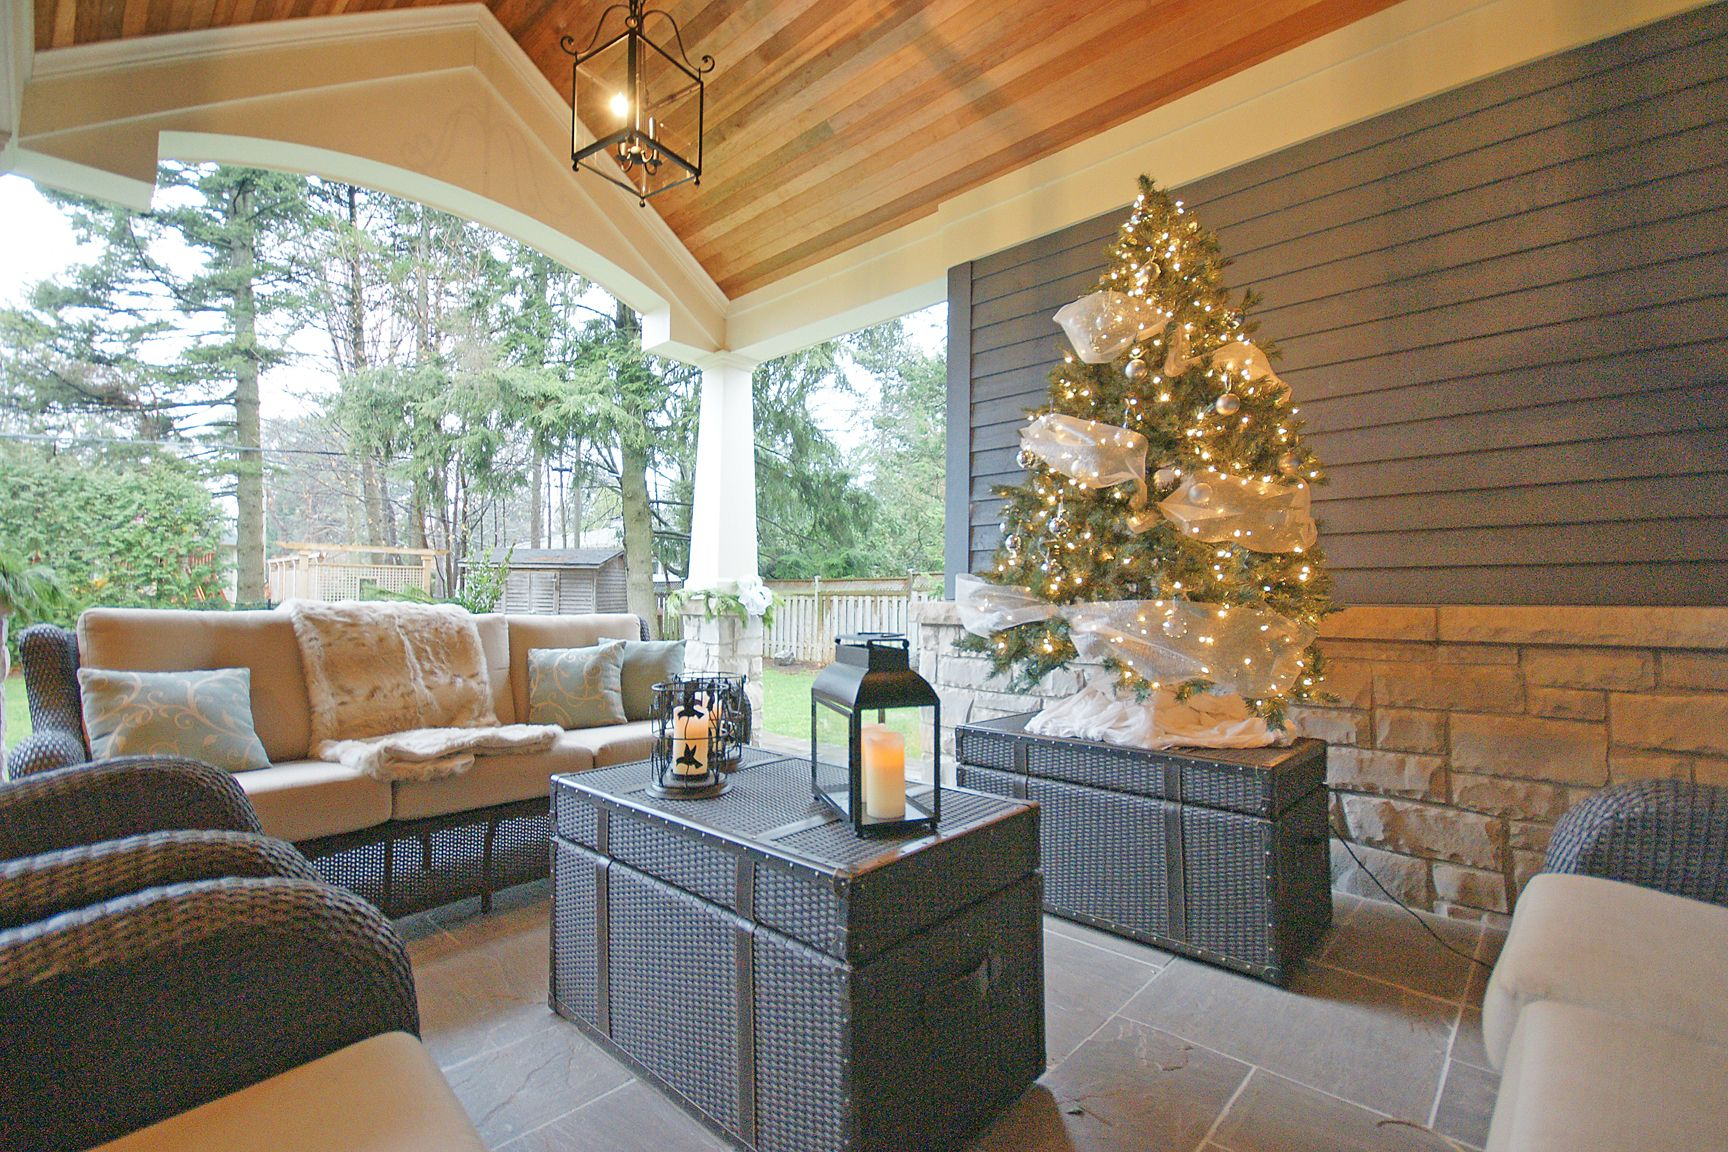 Exterior - Covered Sitting Area - 2011 Oakville Christmas House Tour ...